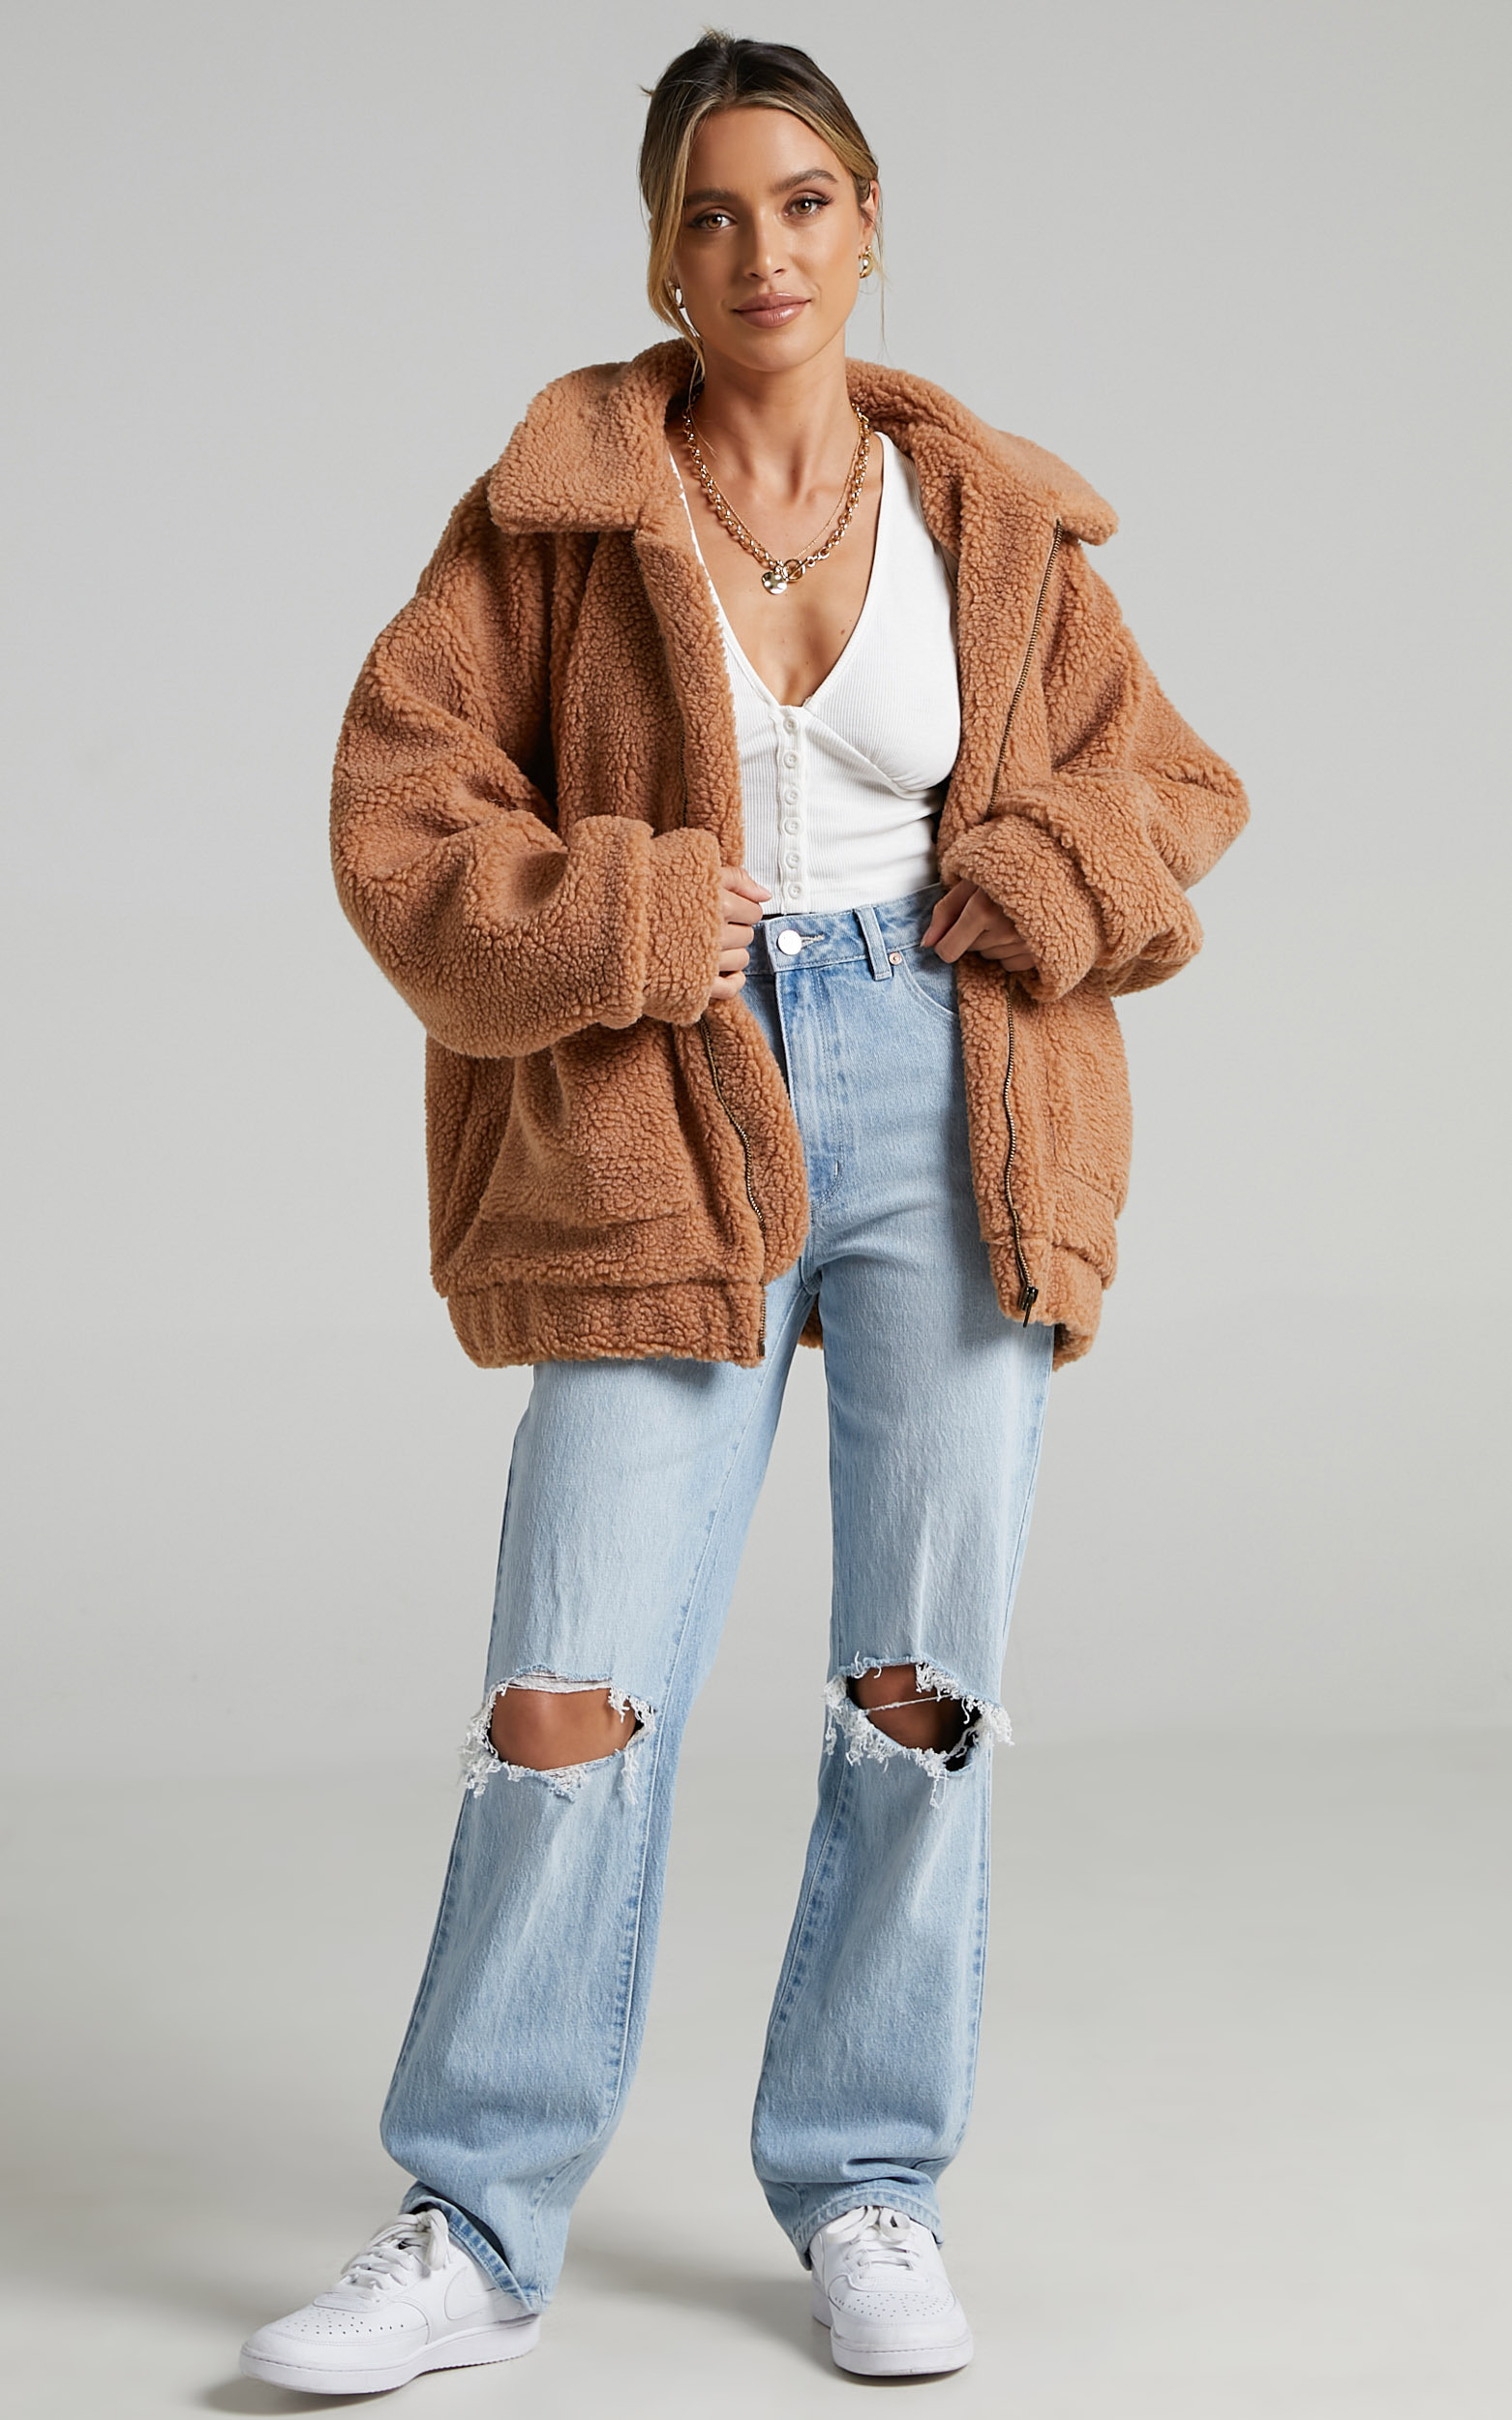 Point Blank Jacket in Mocha Teddy - OneSize, BRN1, hi-res image number null